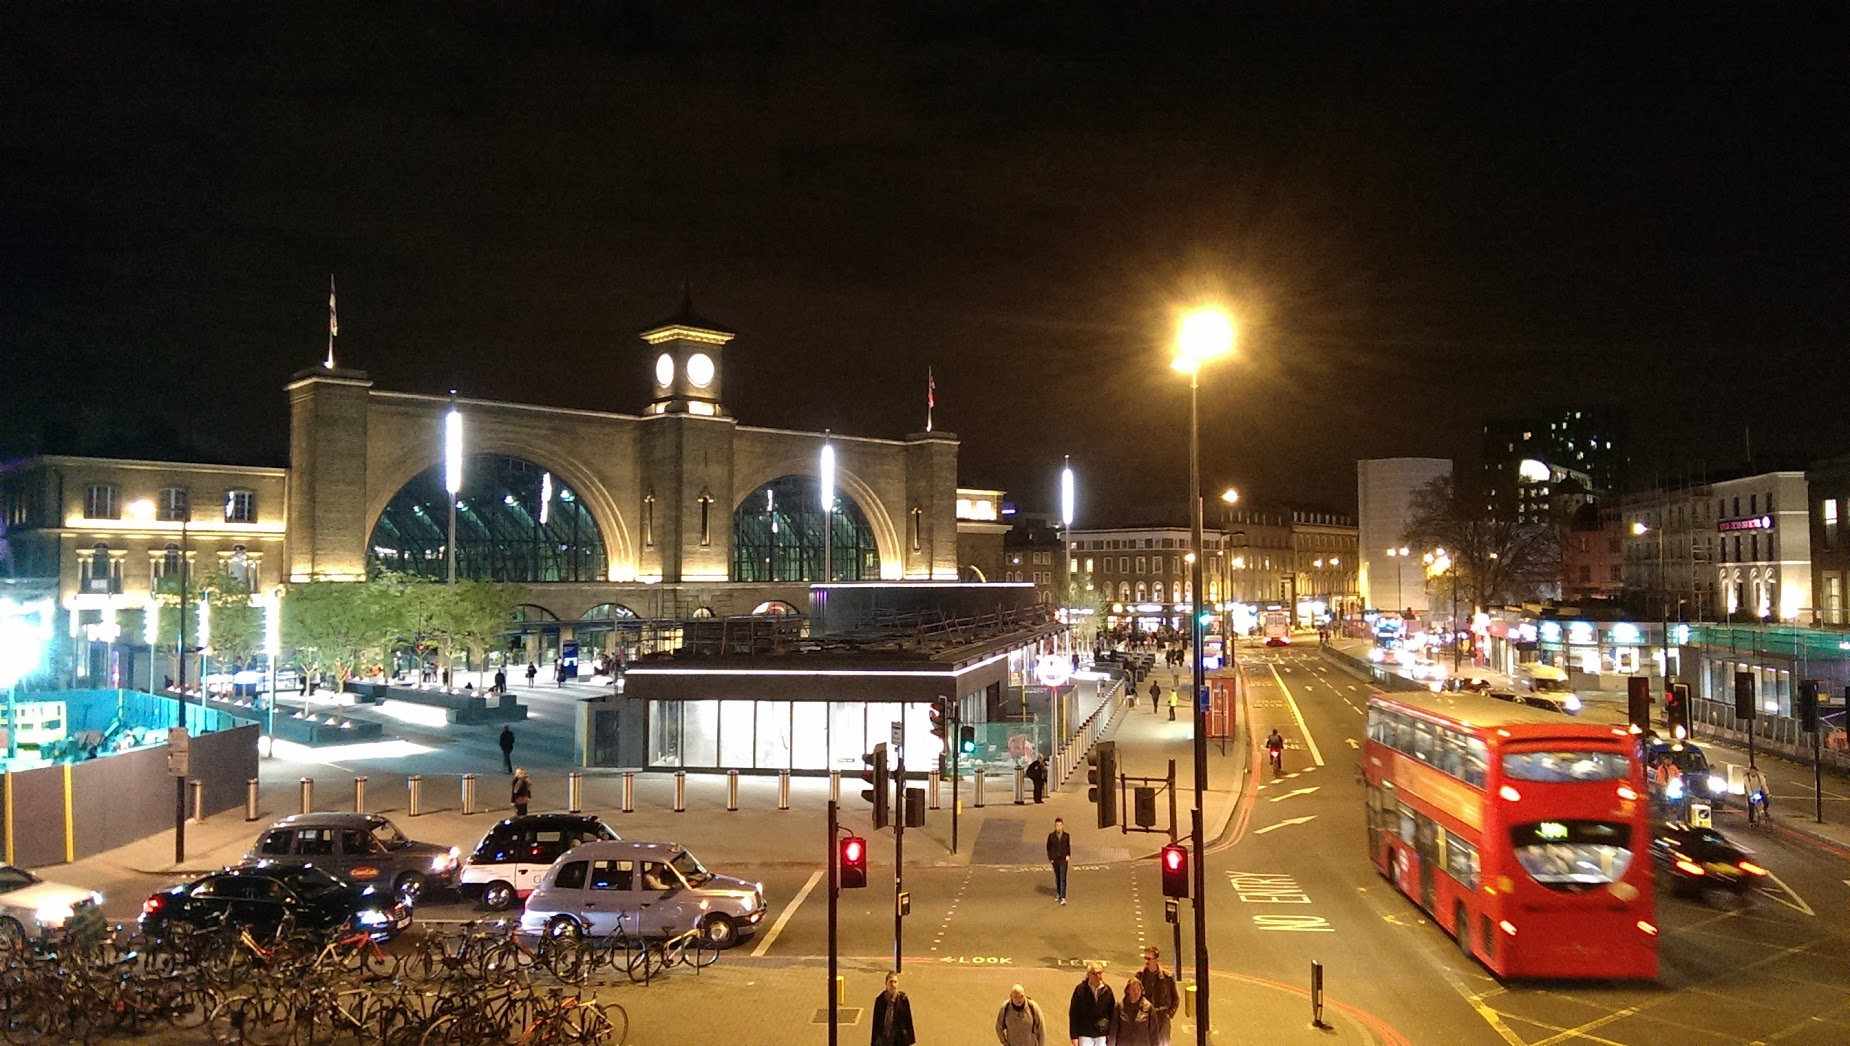 kingscrossnight